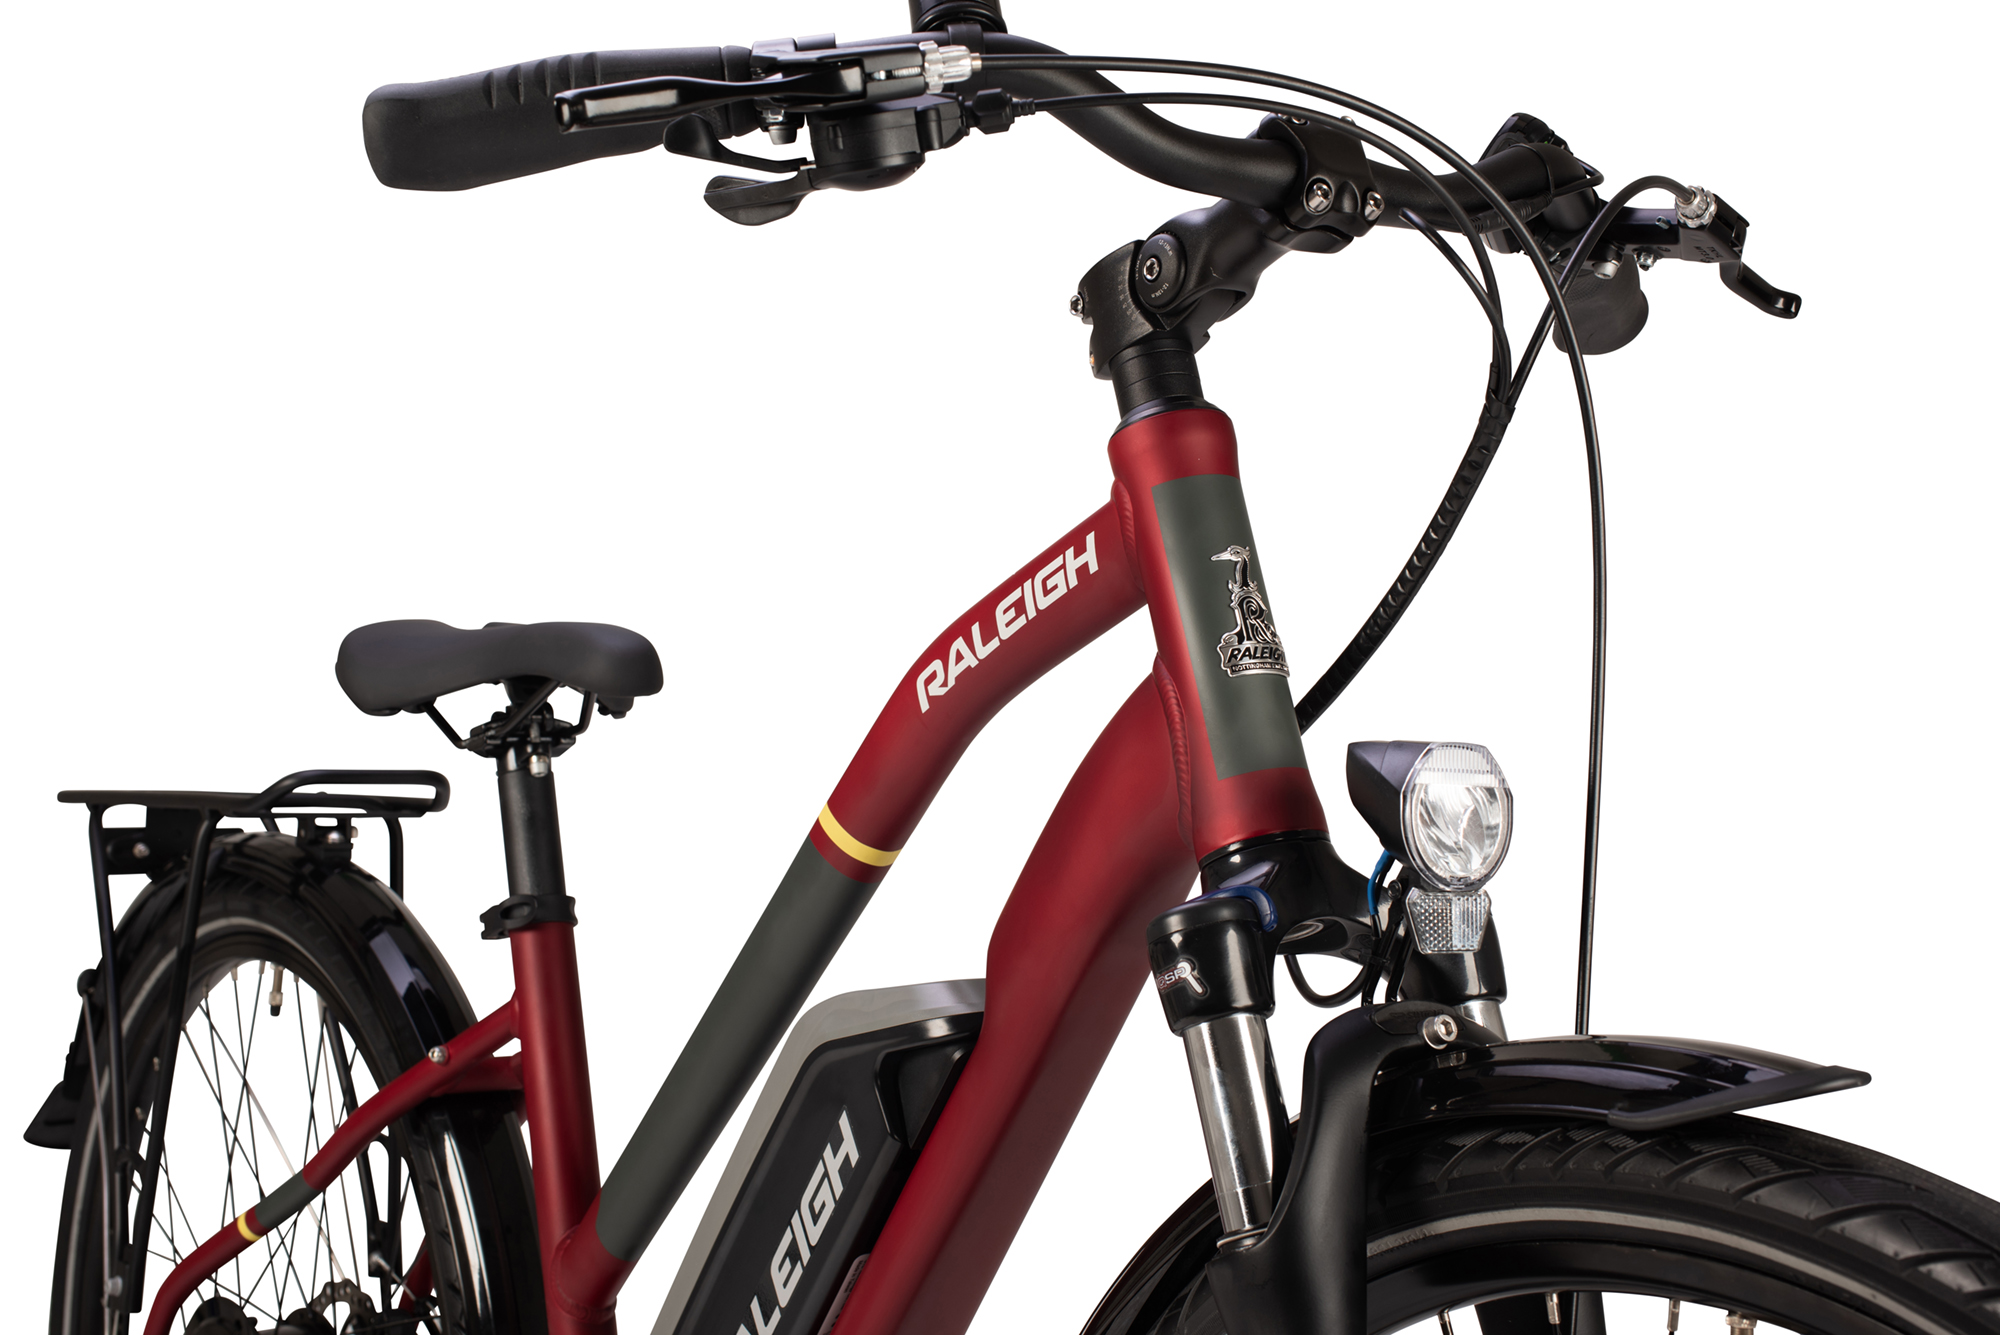 Front forks and handlebars on the Raleigh Array  ope frame electric bike